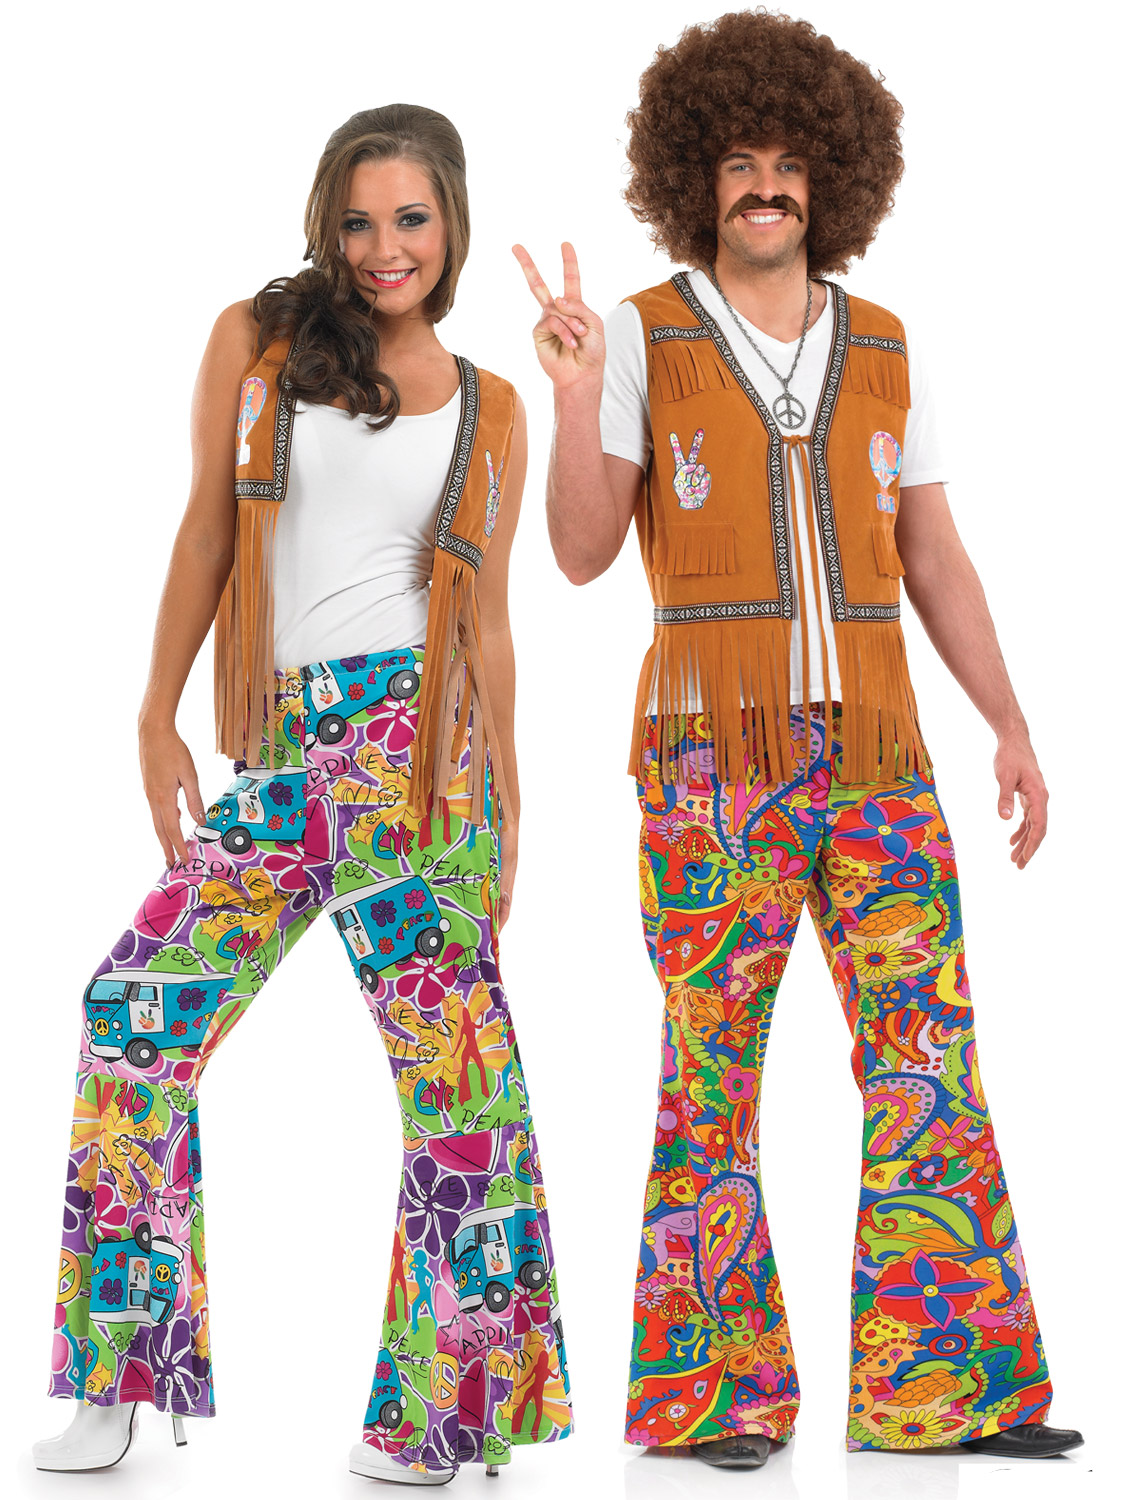 Go back to the 60s with these Mens or Ladies Hippie Flaresu2026 Team is with our Hippie vest to really complete the look.  sc 1 st  eBay & Adults 60s Psychedelic Flares Mens Ladies 70s Hippy Fancy Dress ...